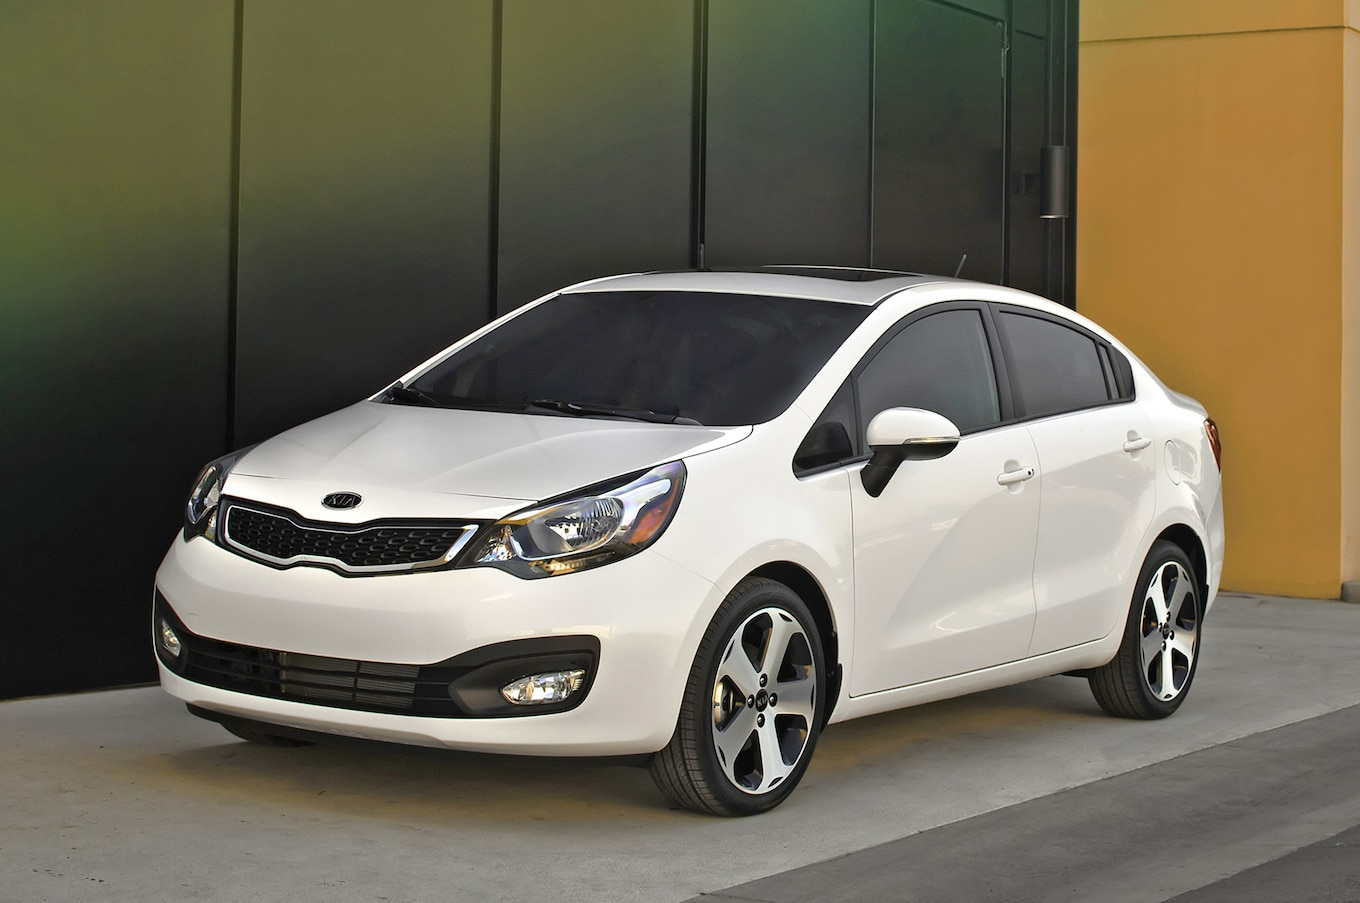 hight resolution of 2013 kia rio sedan